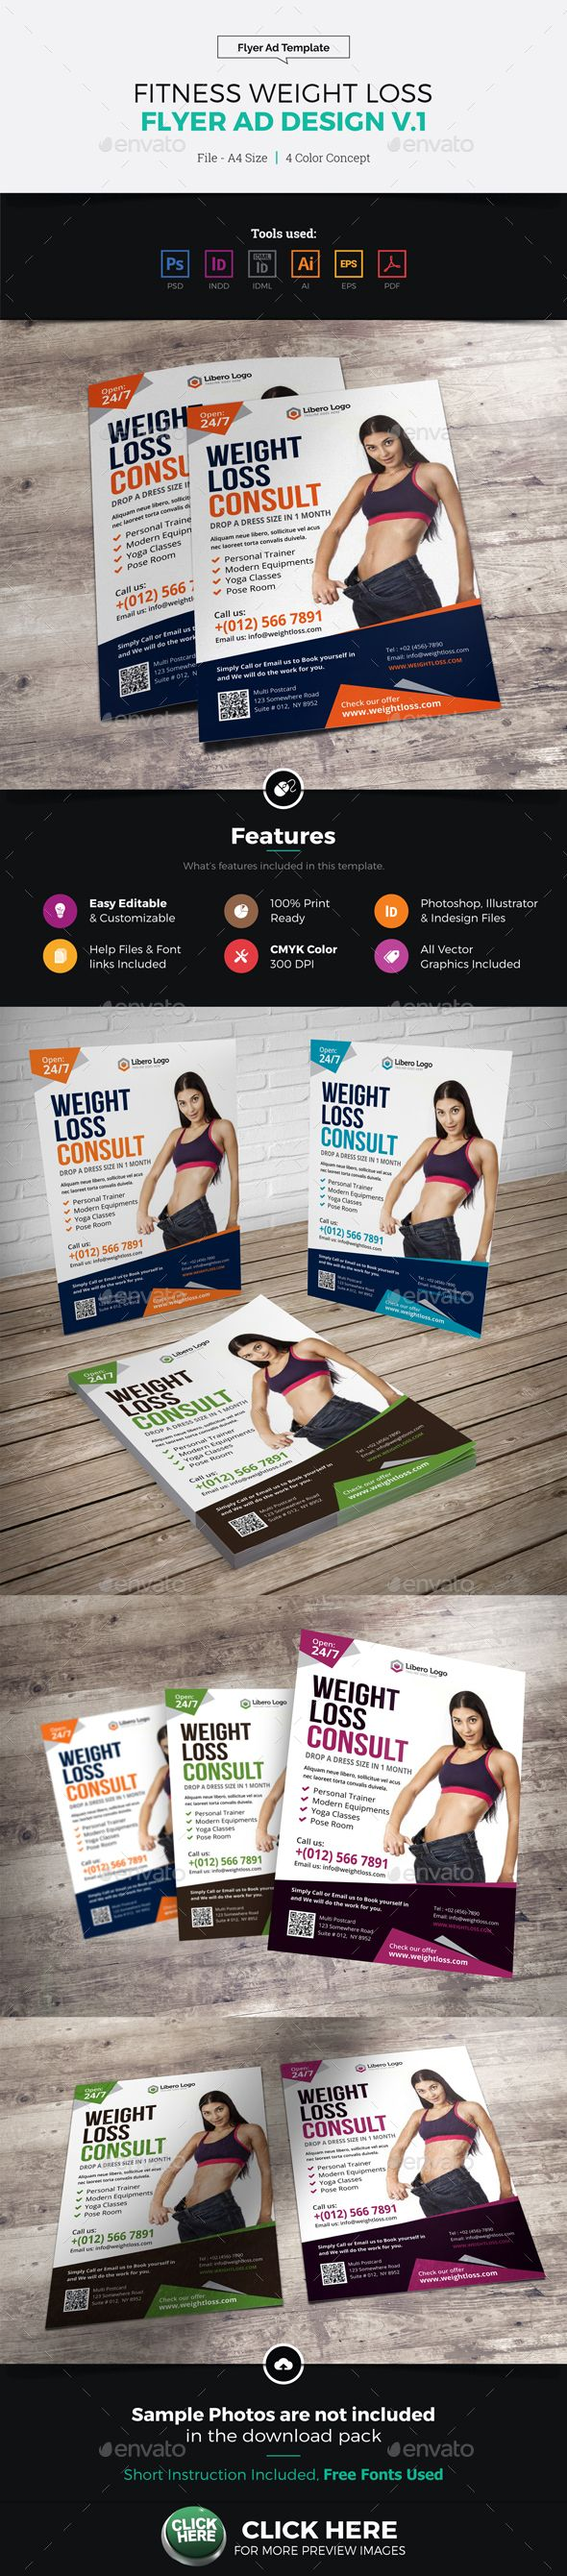 fitness weight loss a5 flyer design template psd vector eps